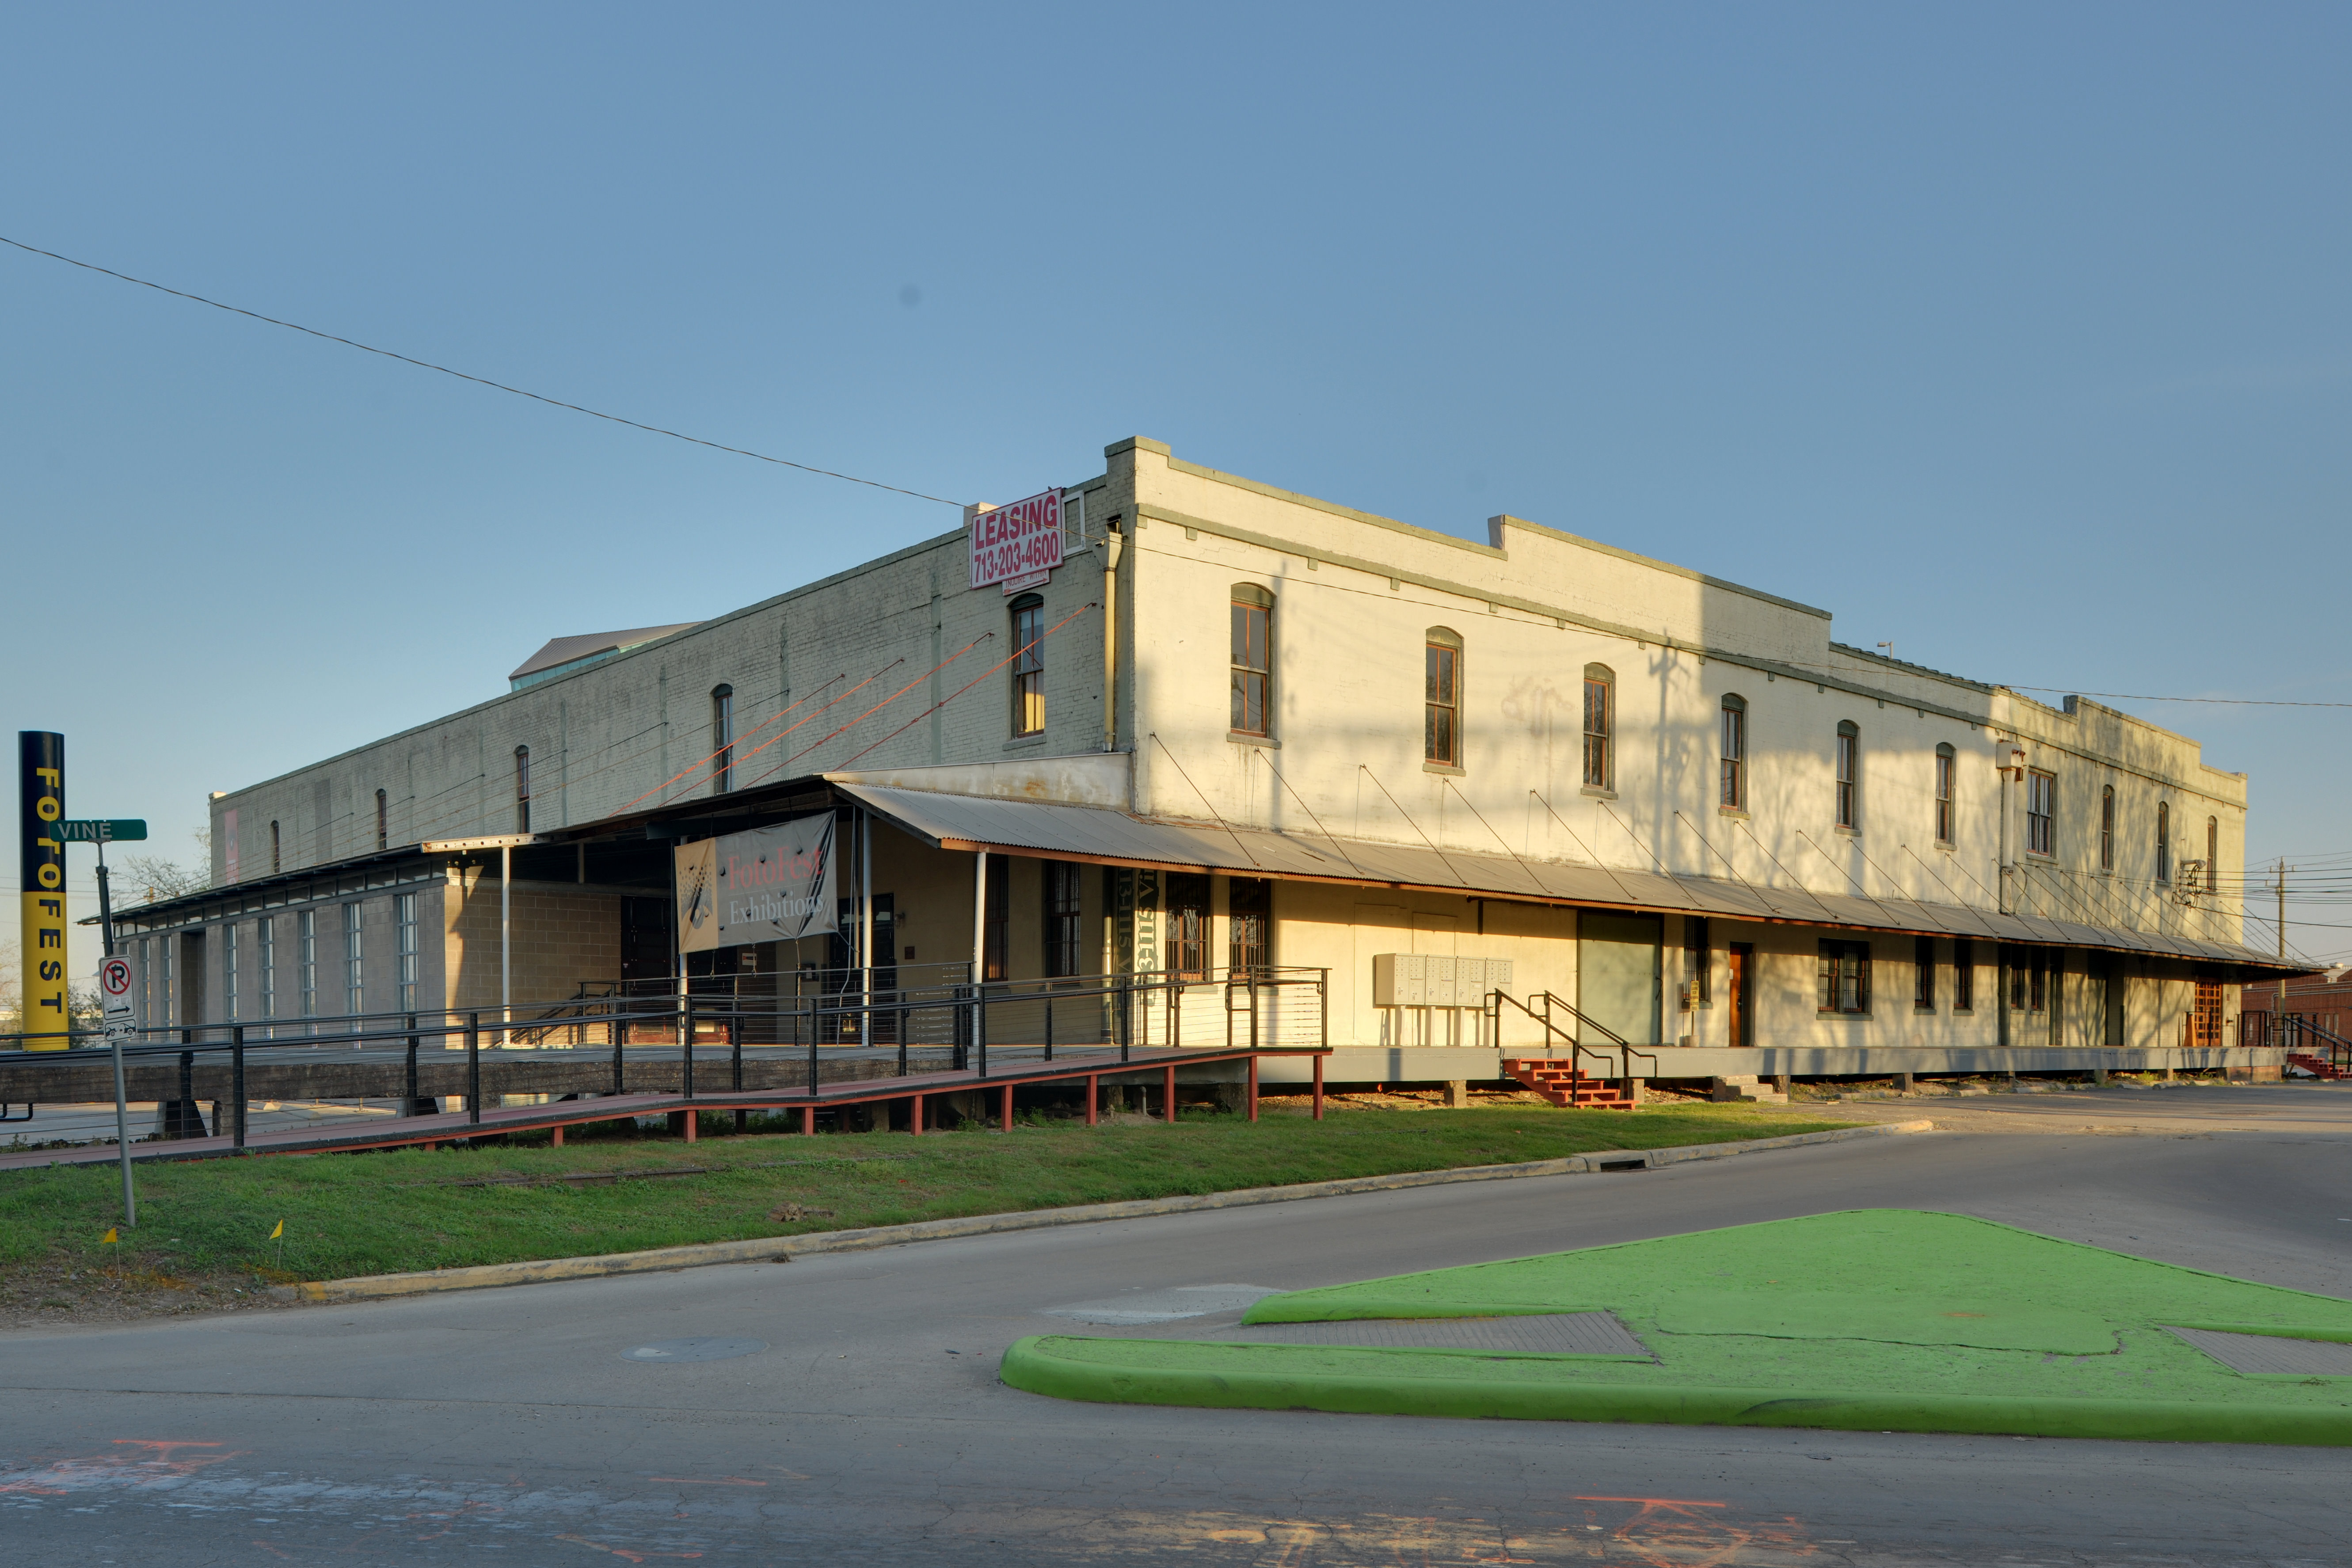 Awesome File:Union Transfer And Storage Building (1113 Vine St Houston)